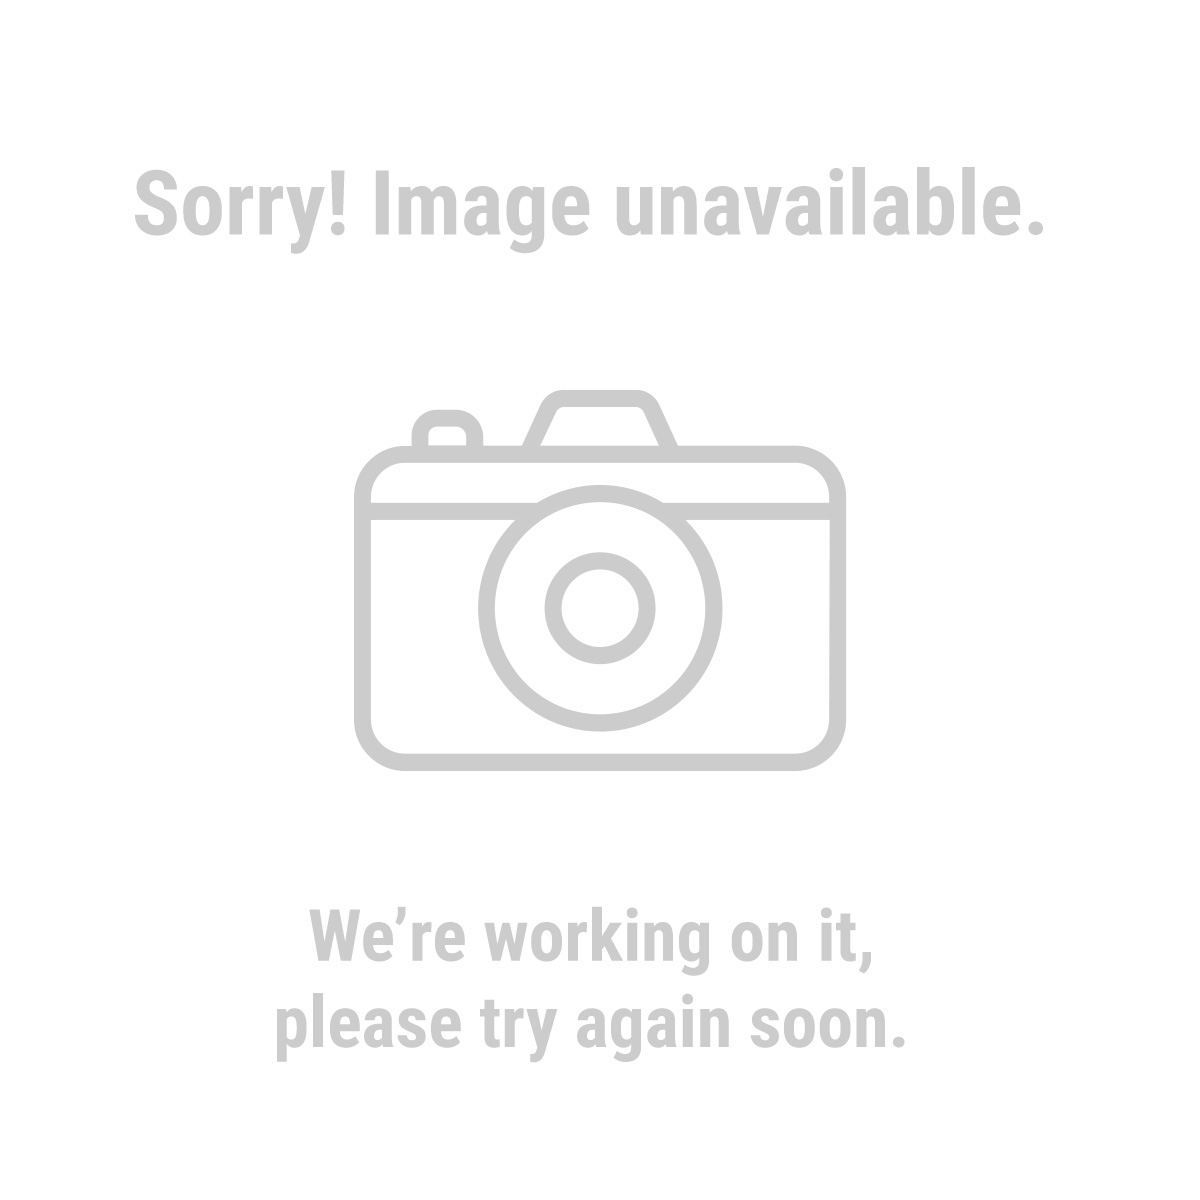 Central Pneumatic 68127 2 Horsepower, 29 Gallon, 150 PSI Cast Iron Vertical Air Compressor